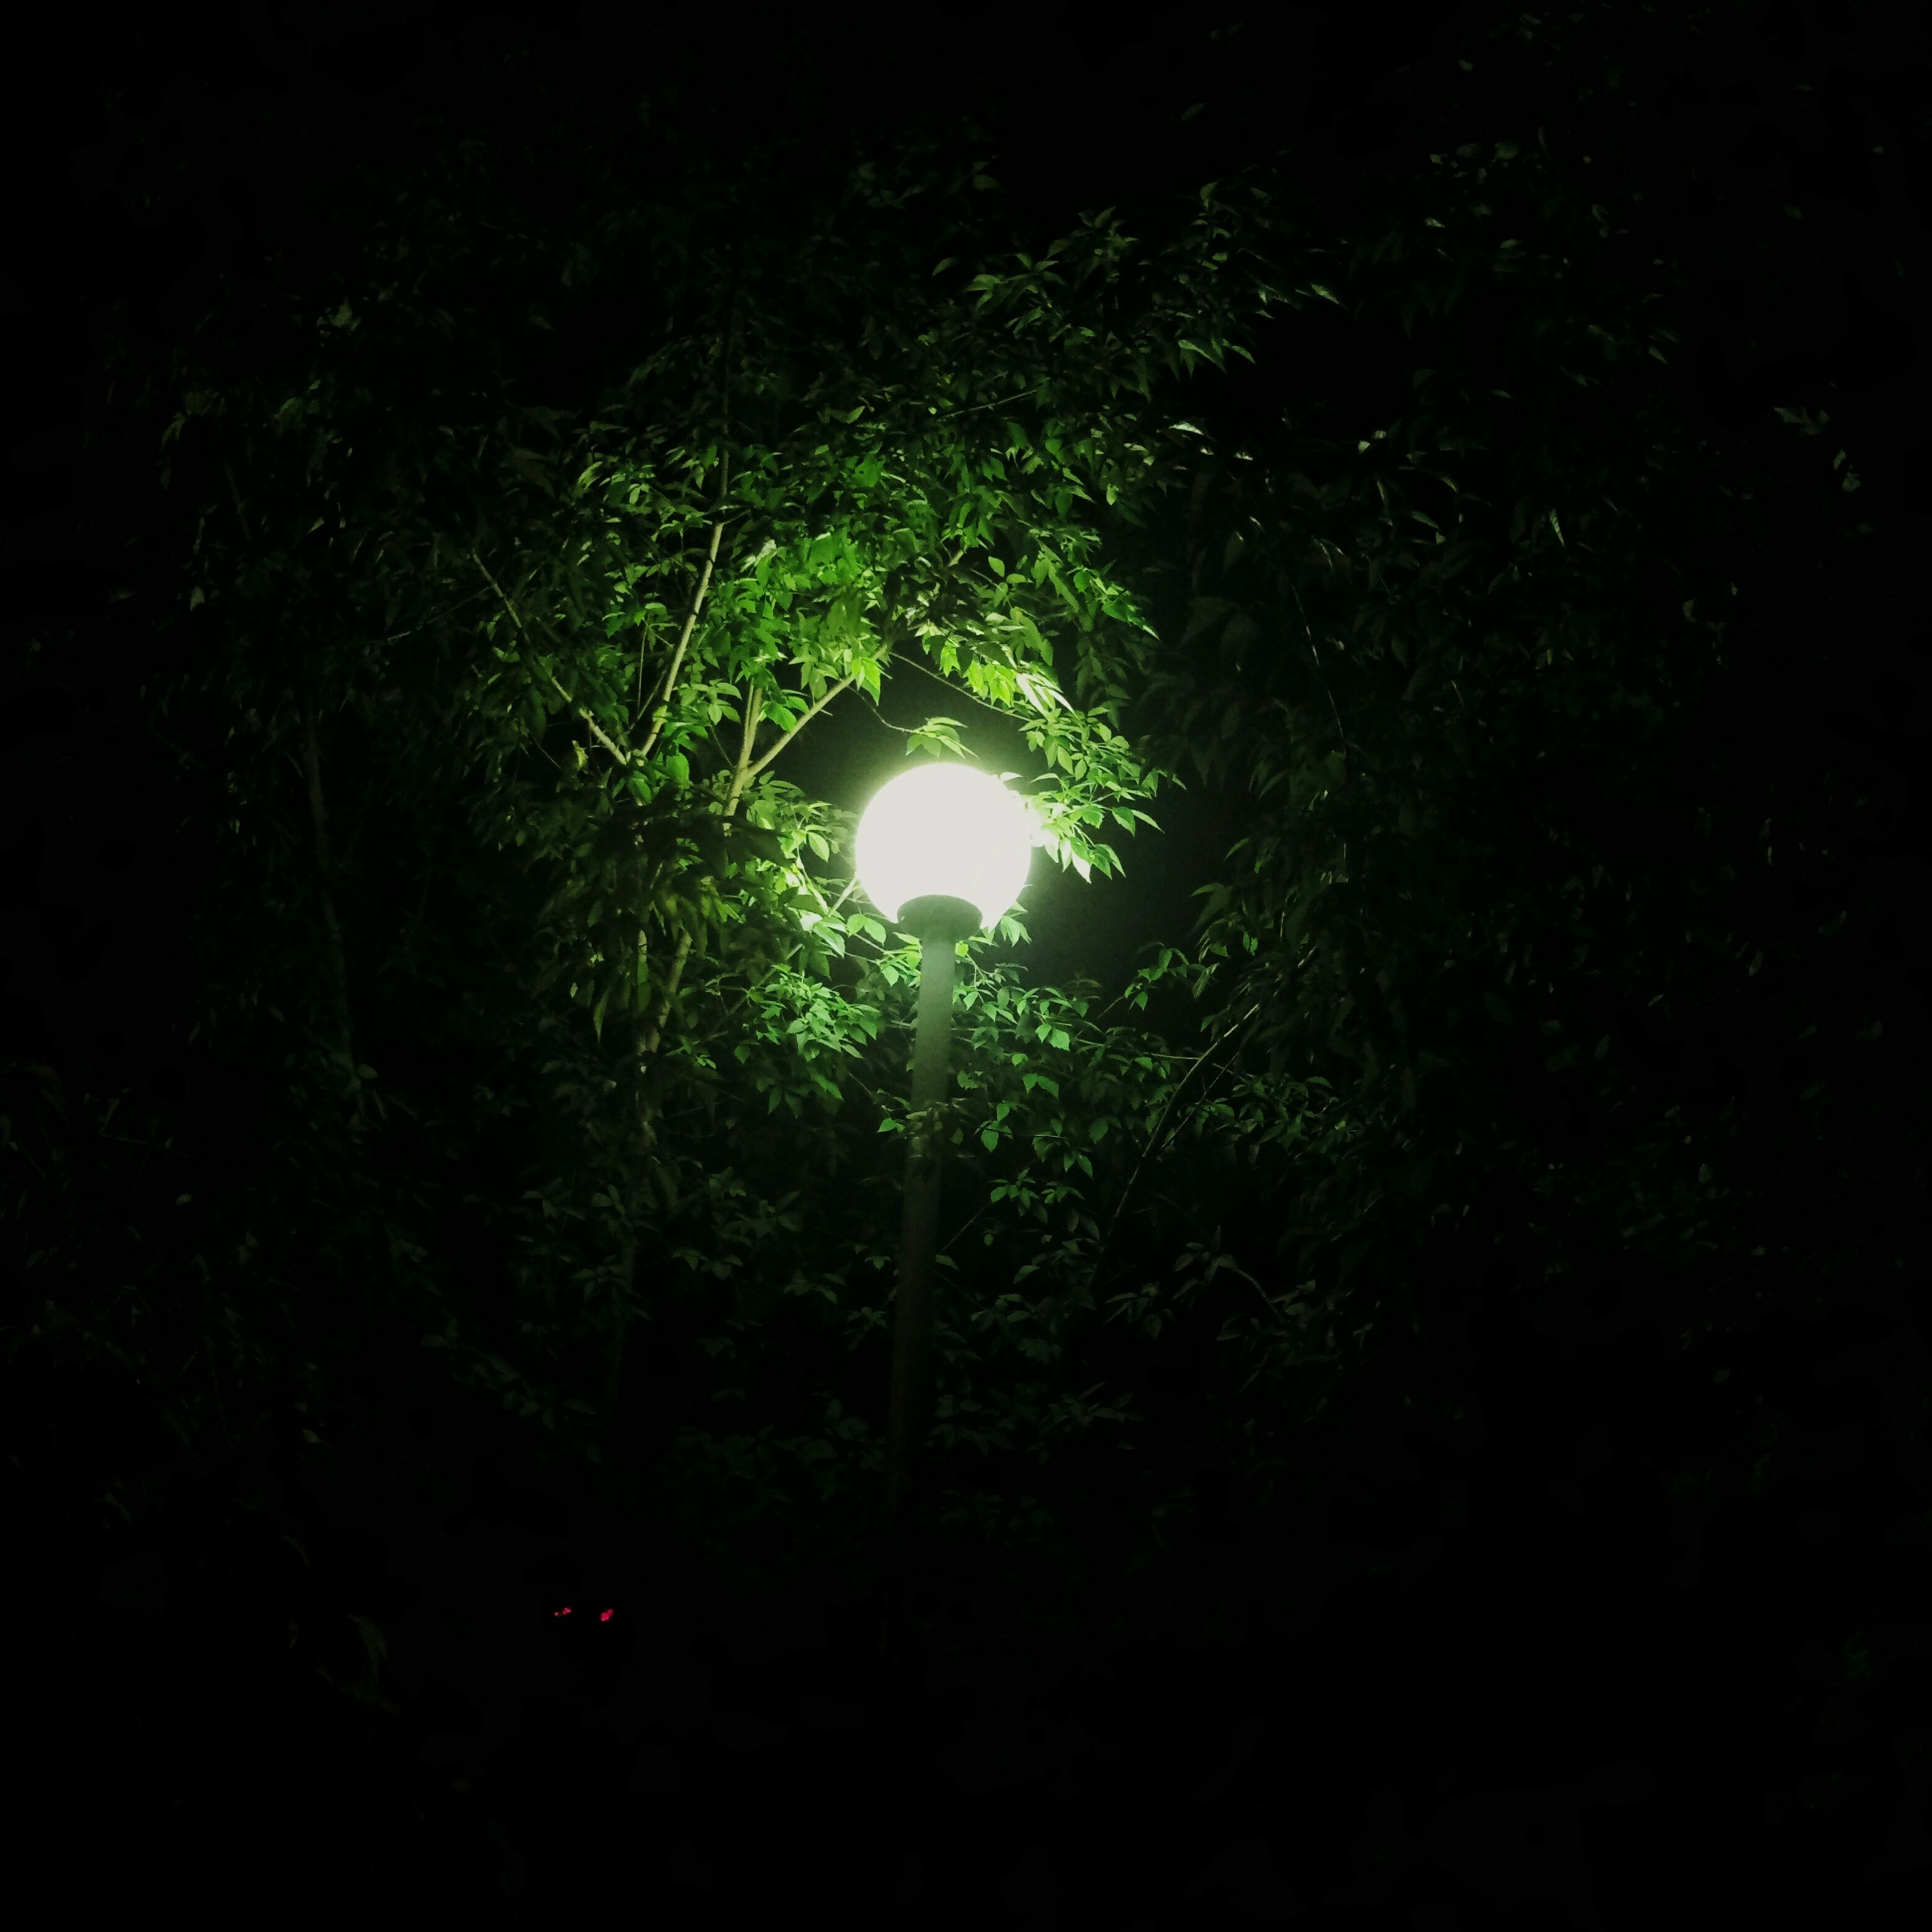 street light, lighting equipment, illuminated, low angle view, tree, night, dark, electric light, growth, glowing, tranquility, nature, branch, outdoors, scenics, sky, back lit, green color, tranquil scene, lit, light beam, beauty in nature, no people, woods